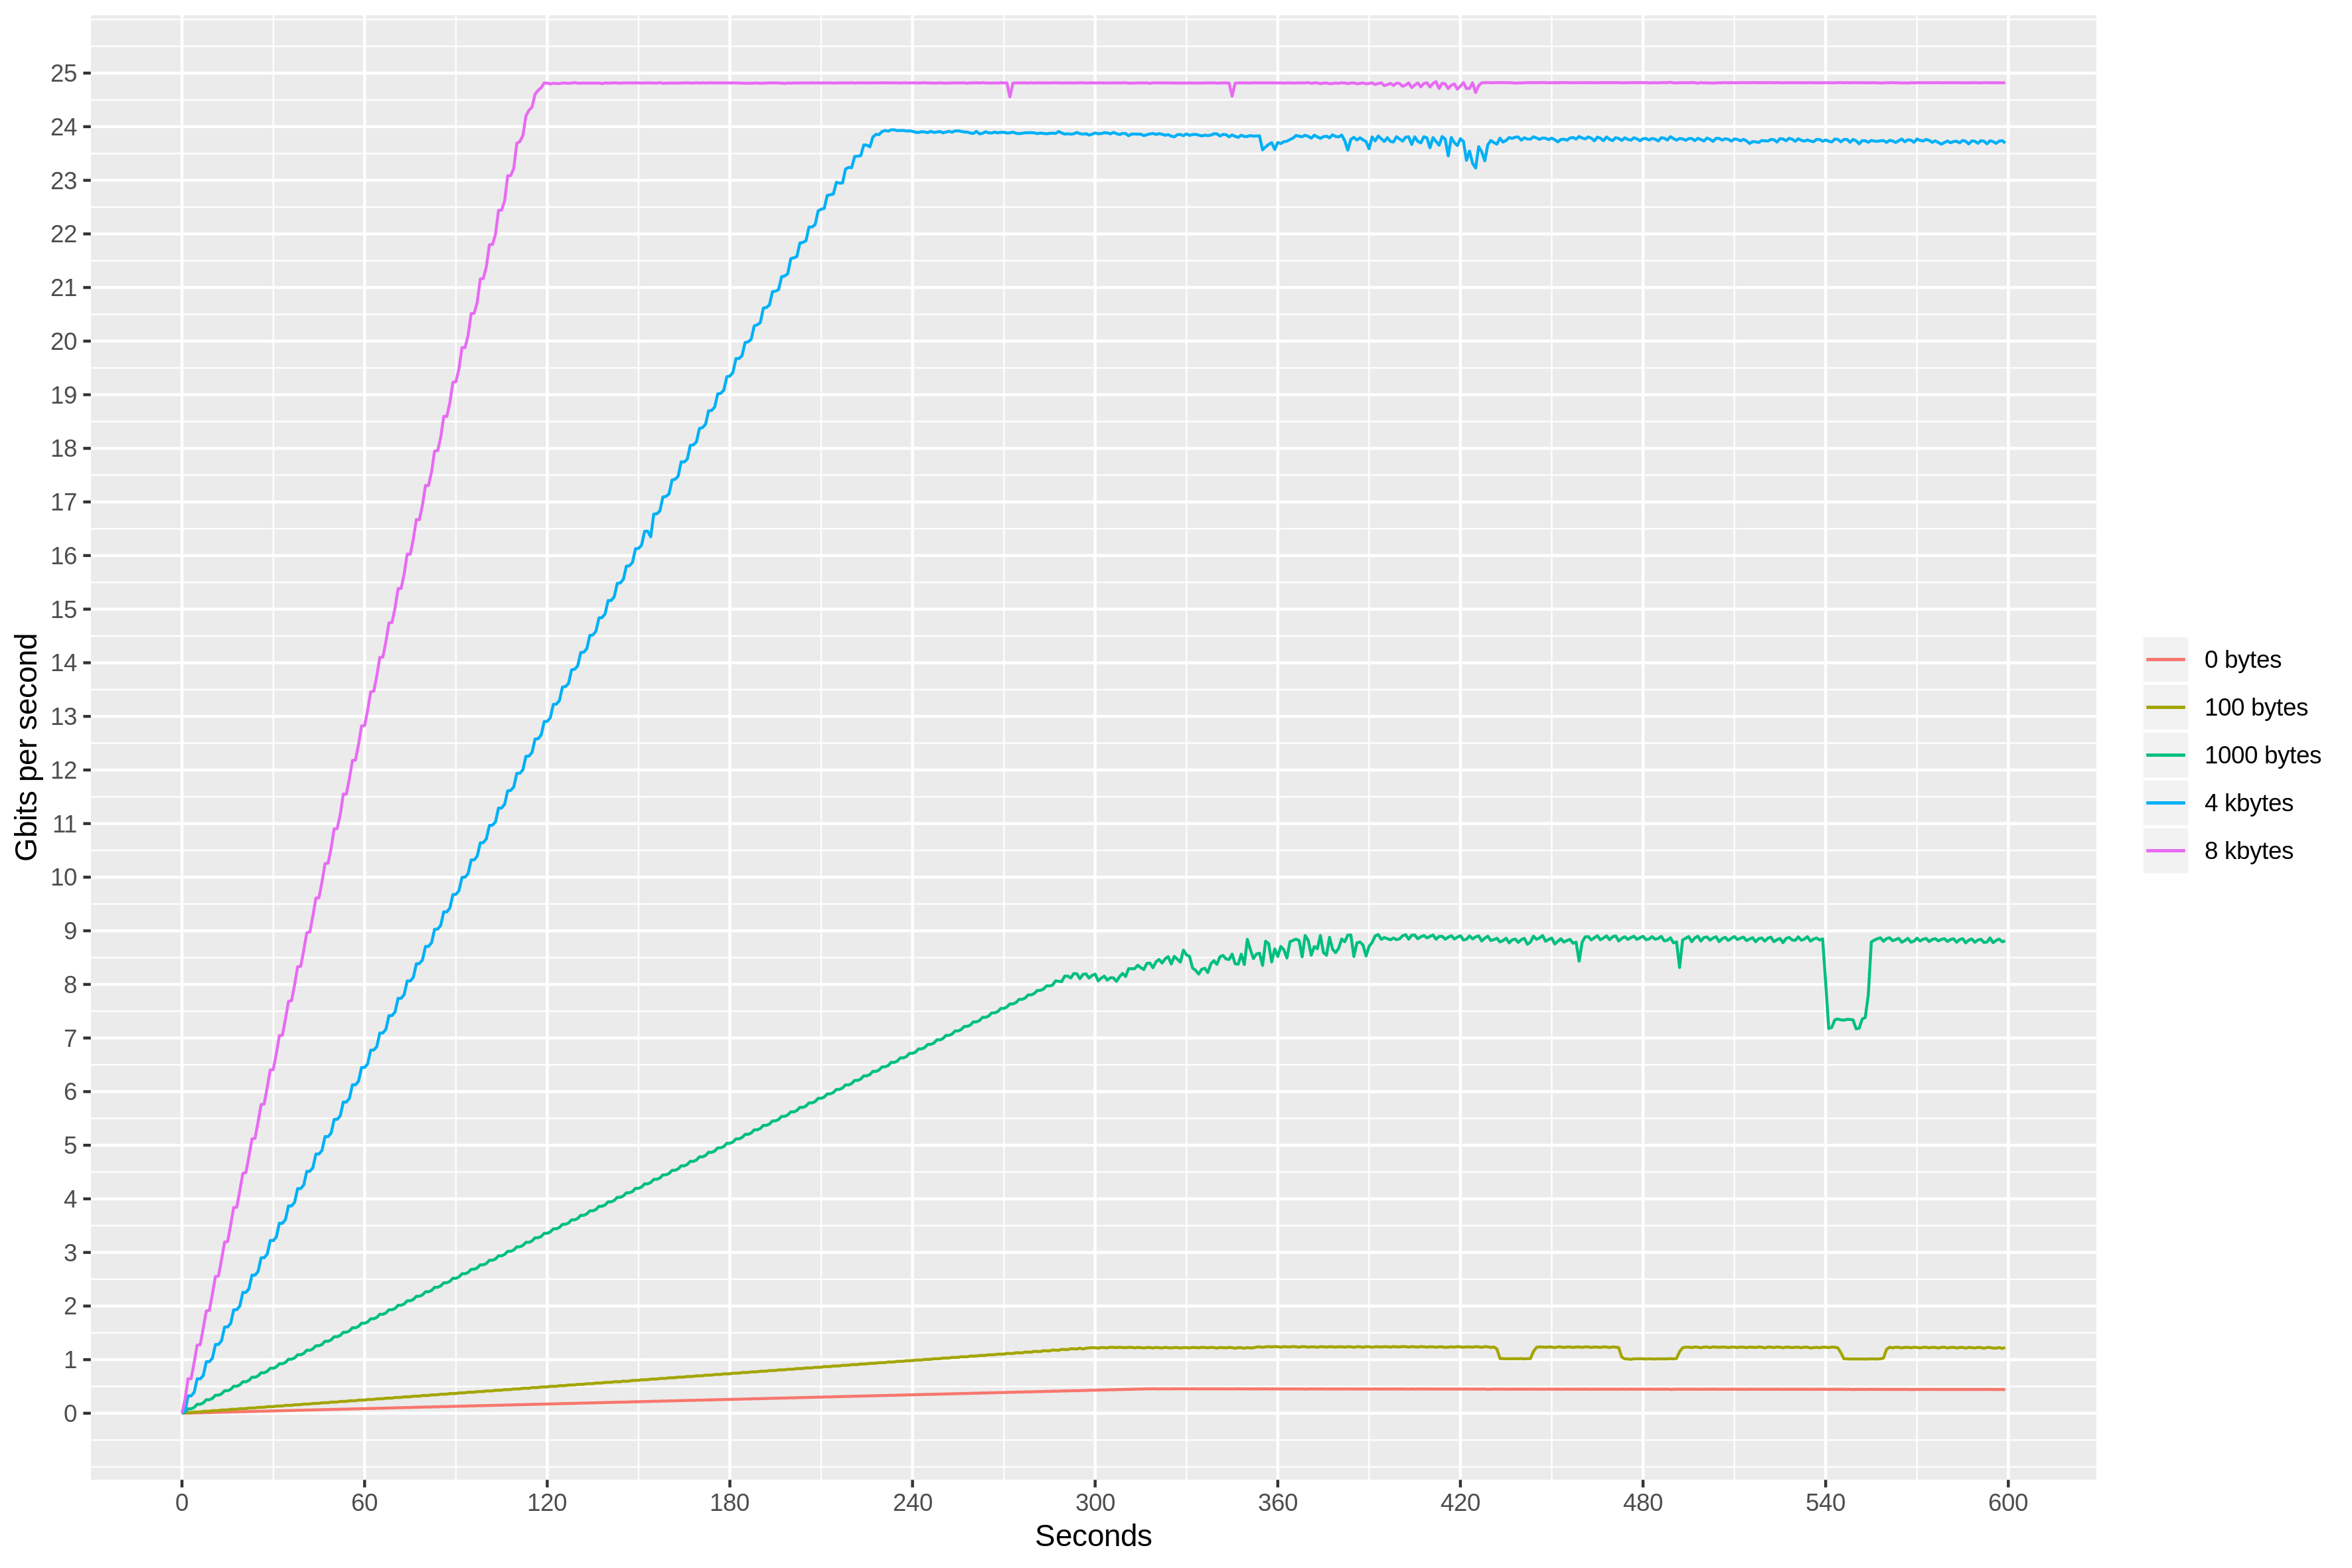 Packets-per-second limits in EC2